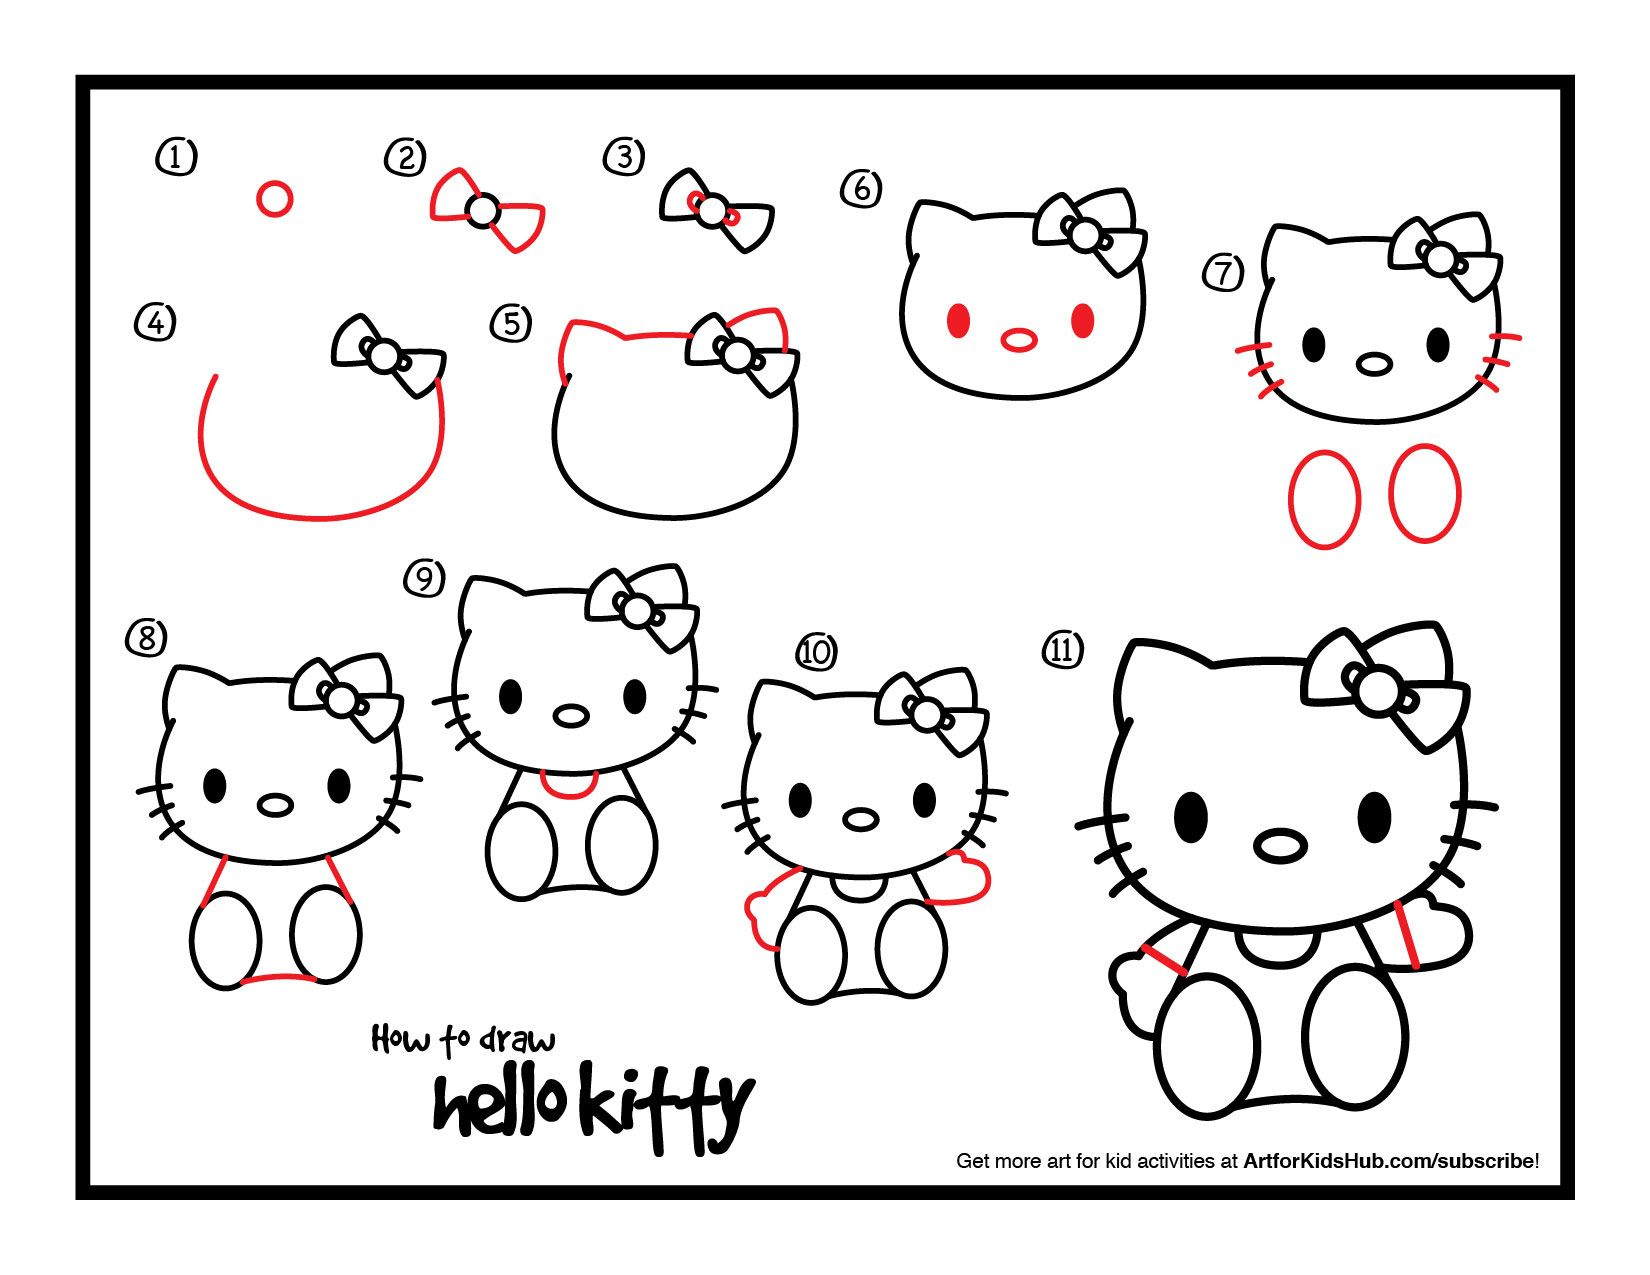 download how to draw hello kitty - Hello Kitty Pictures To Draw